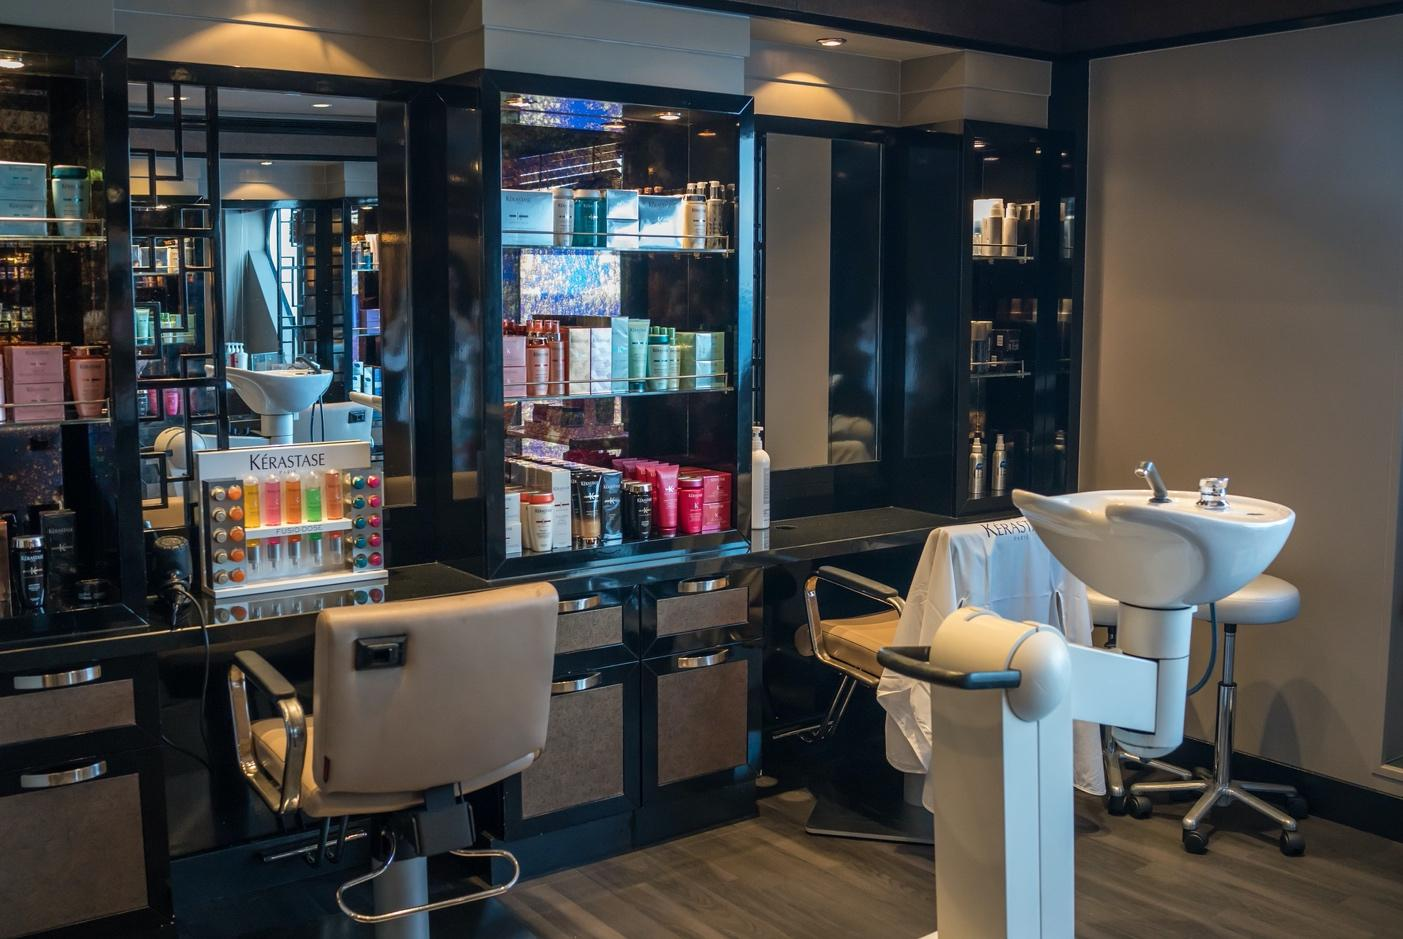 Salon space with retail products on the shelf